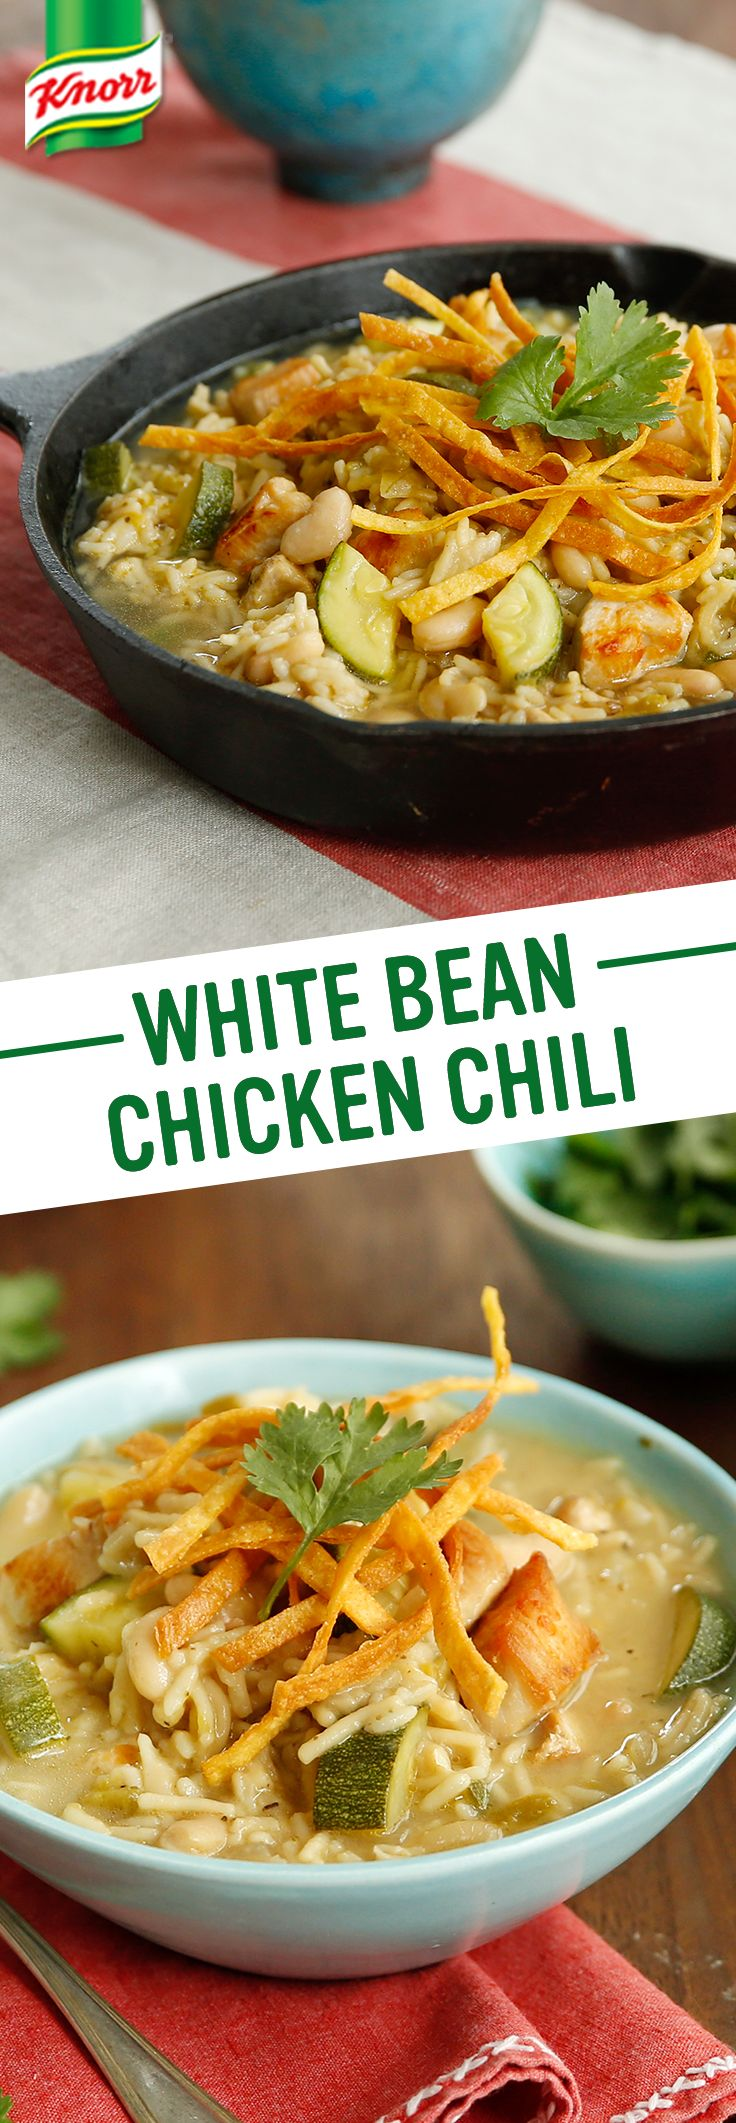 103 best chicken recipes images on pinterest cooked chicken heres an idea for sharing flavors of the southwest w your family knorrs white ccuart Choice Image